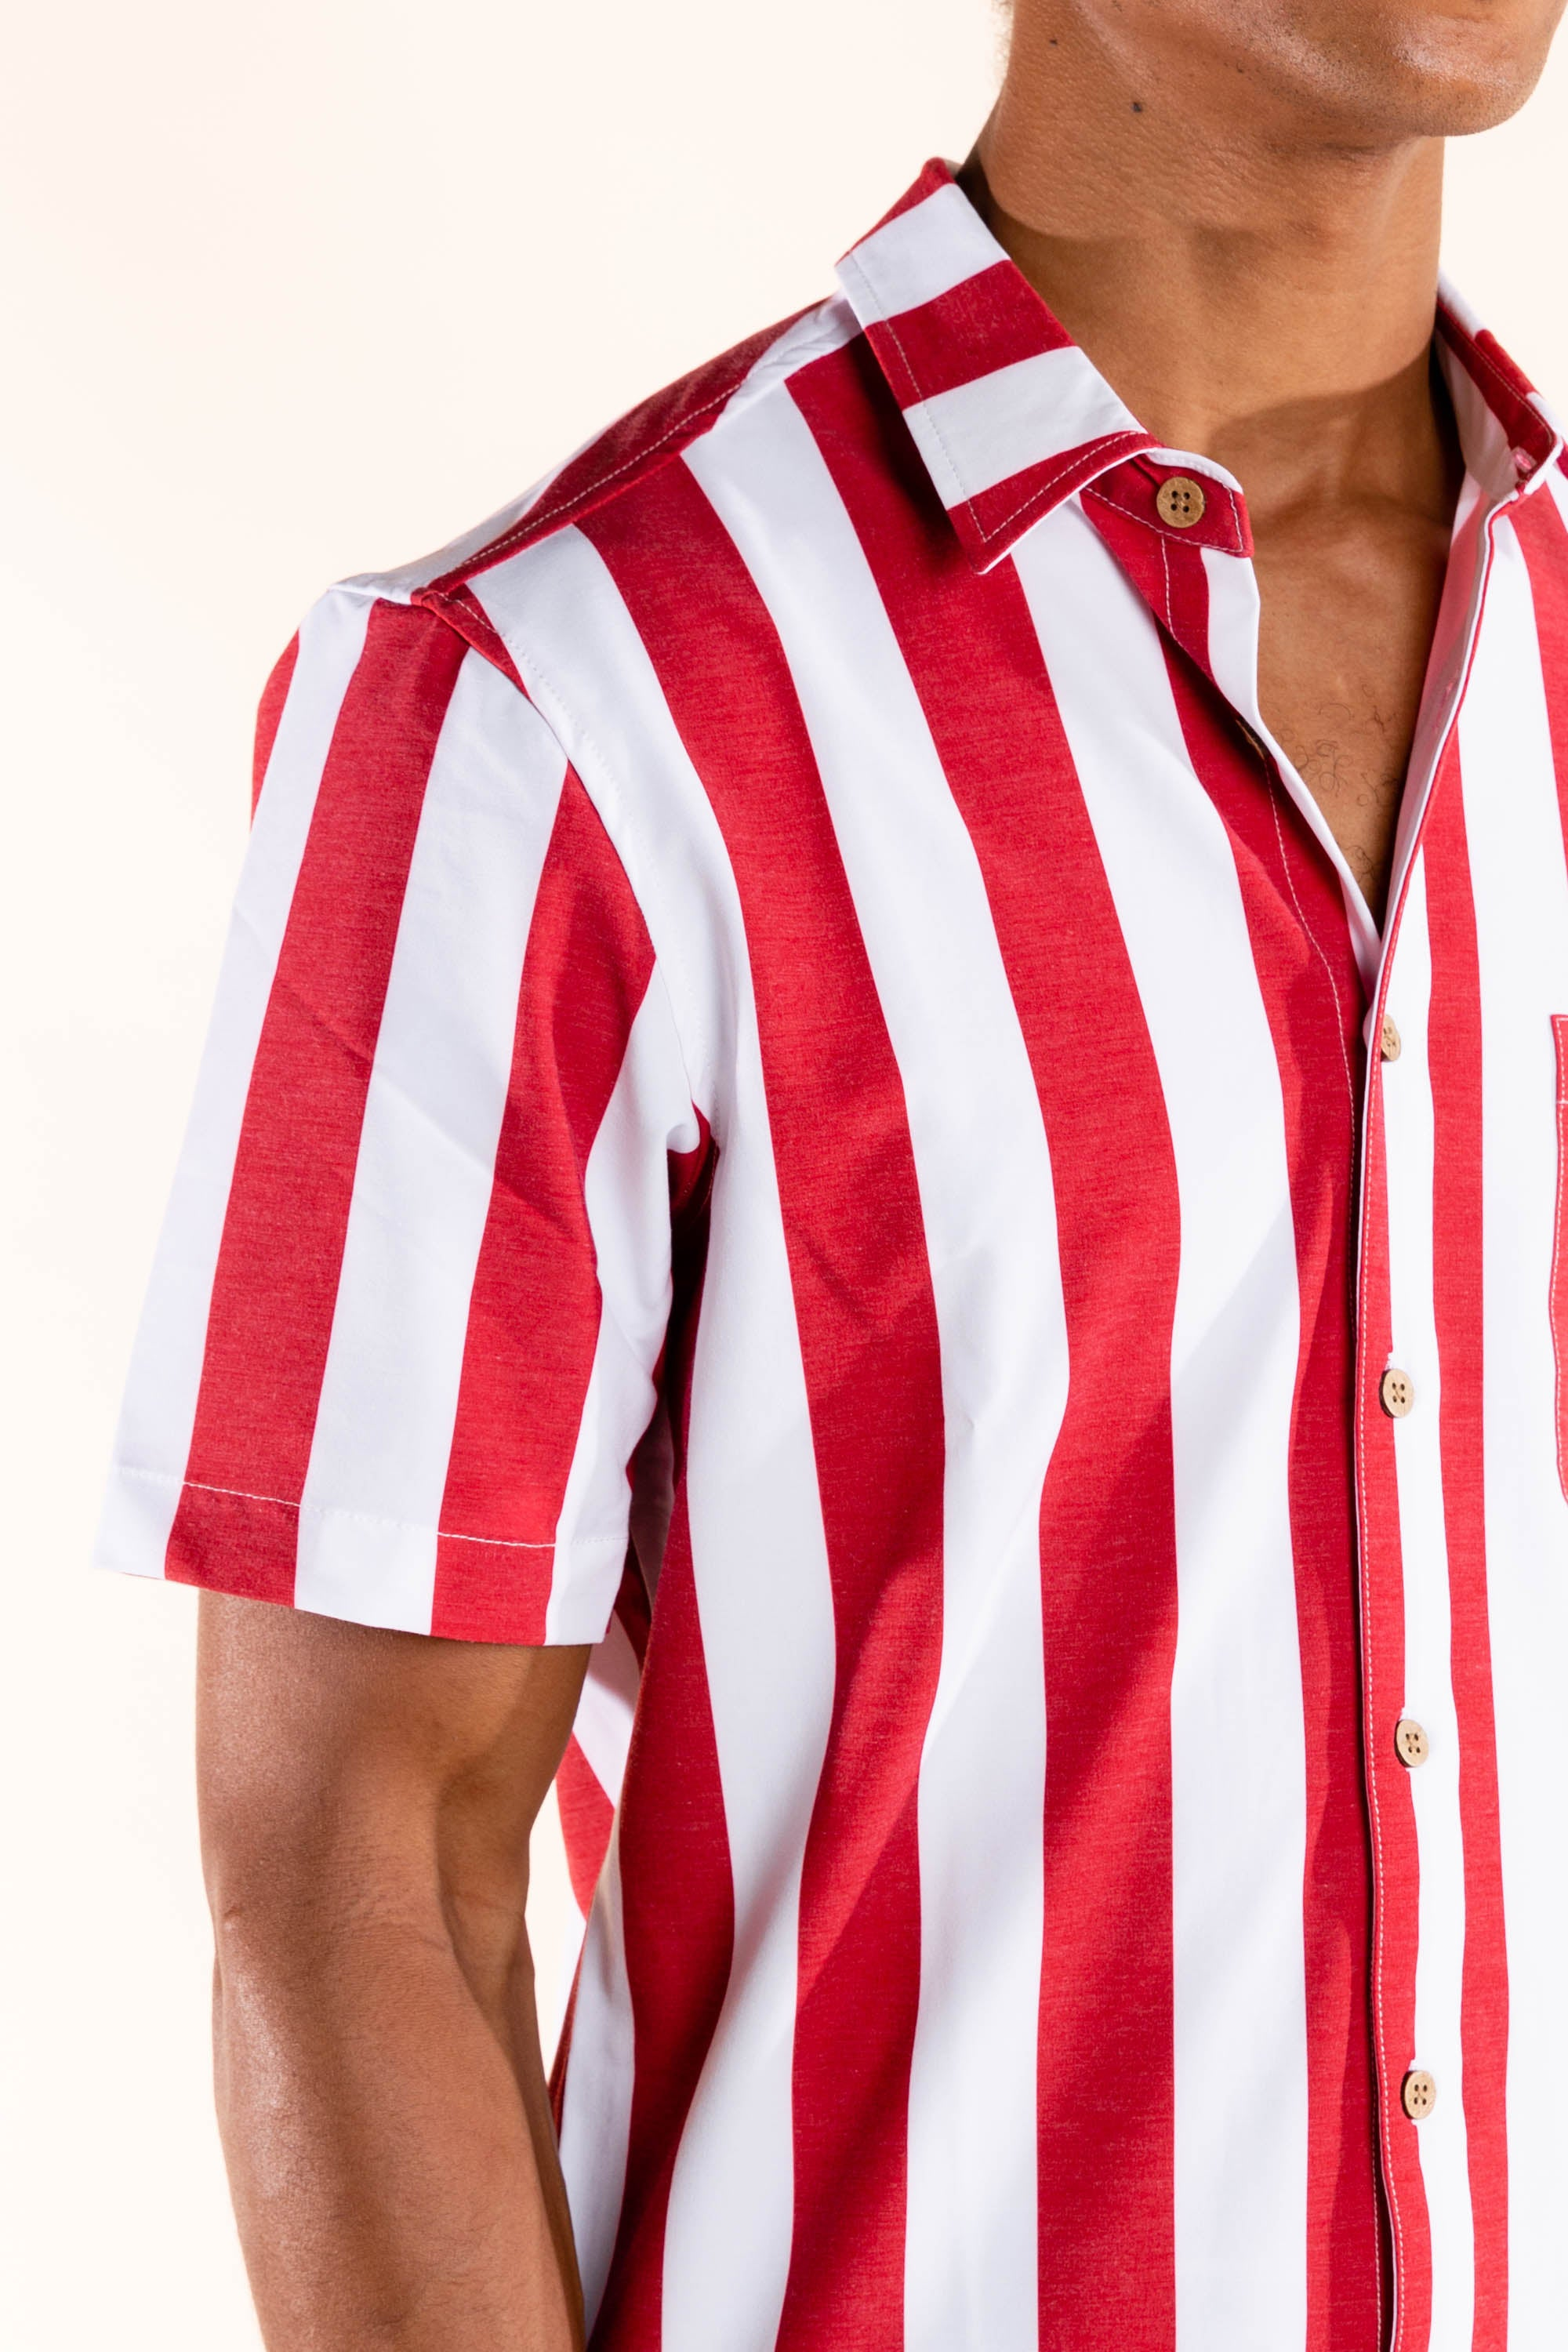 The Indy | Indiana University Red and White Striped Hawaiian Shirt